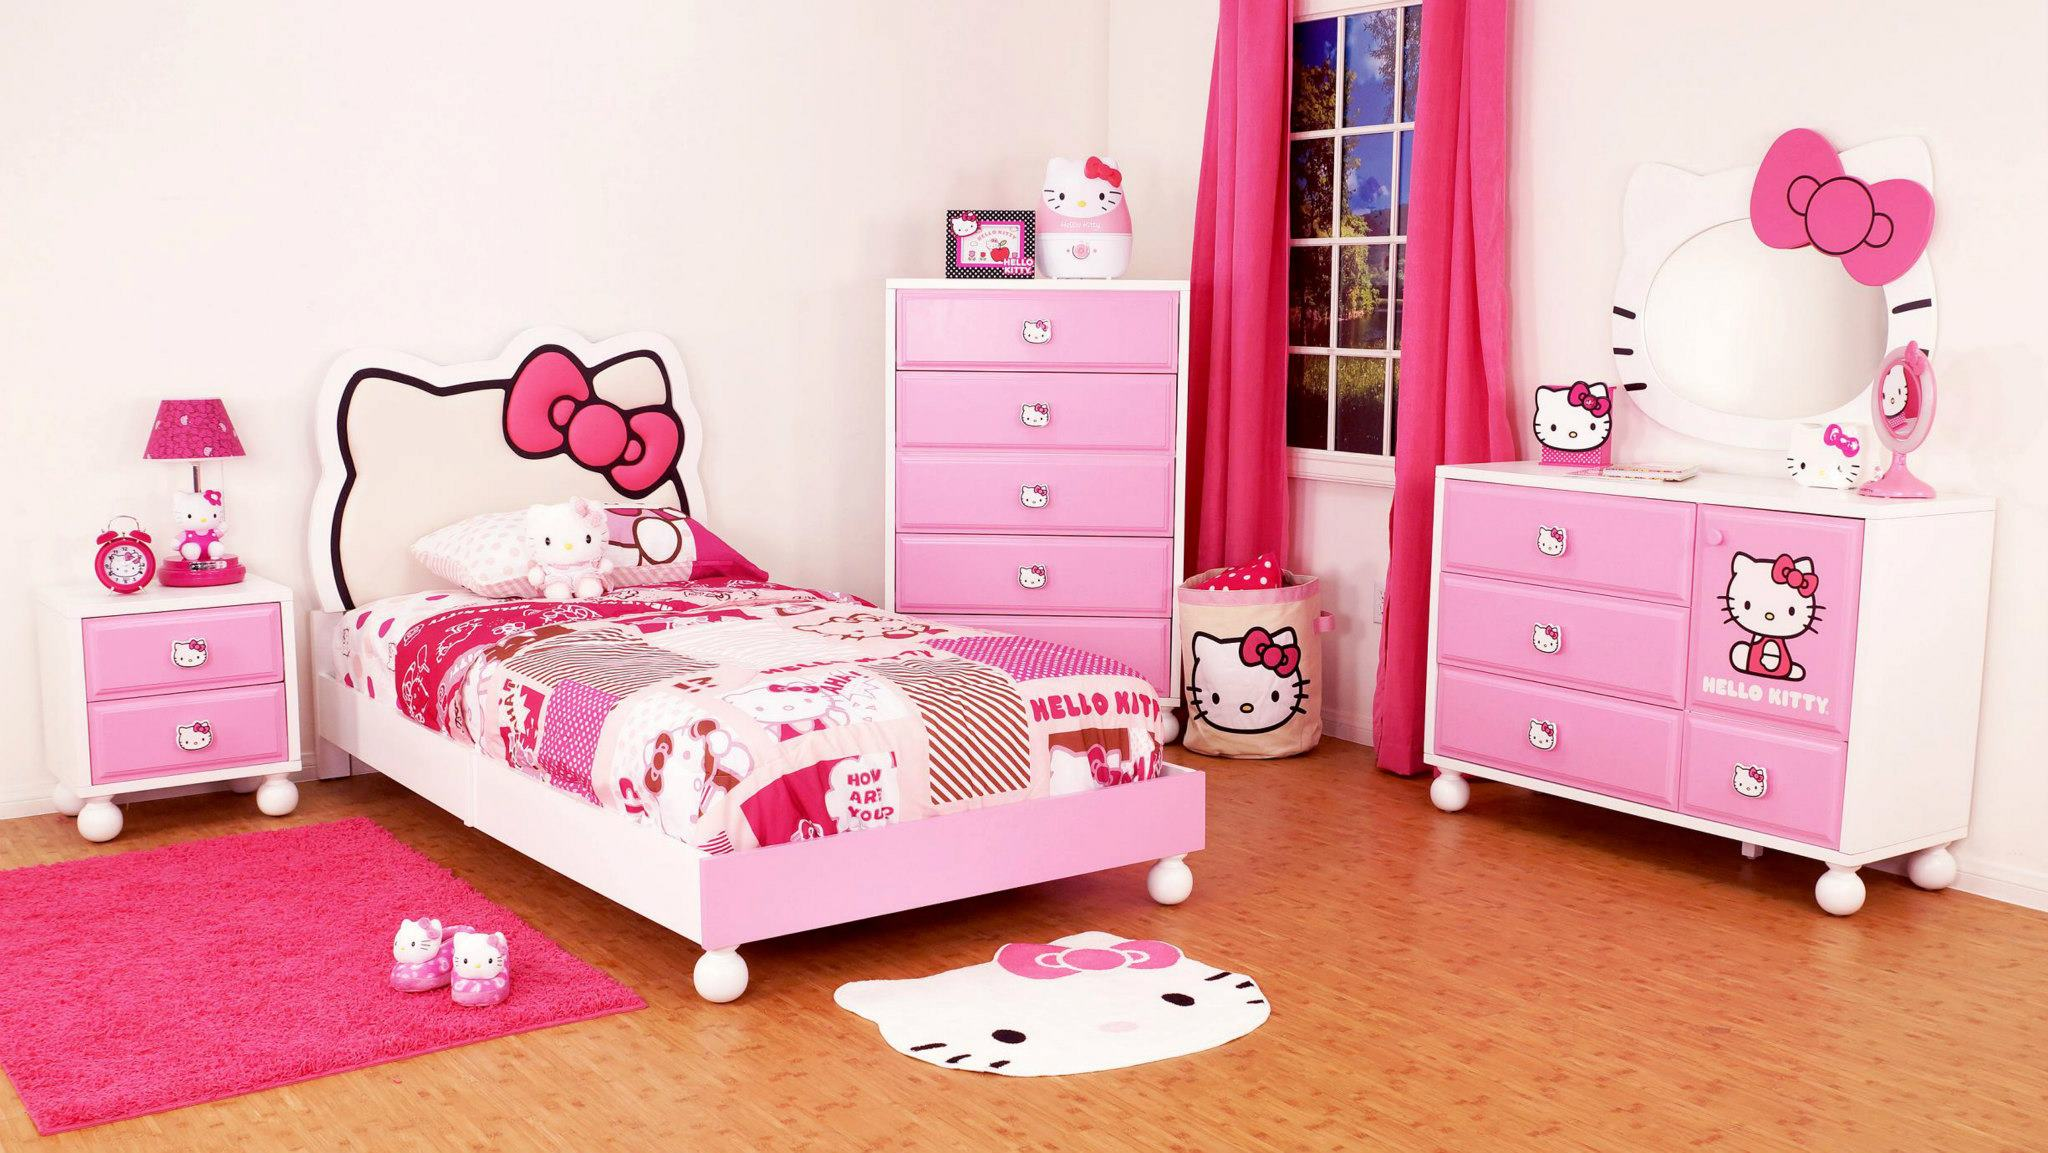 Hello kitty bedroom designs for girls - 25 Most Adorable Hello Kitty Bedroom Decoration Ideas